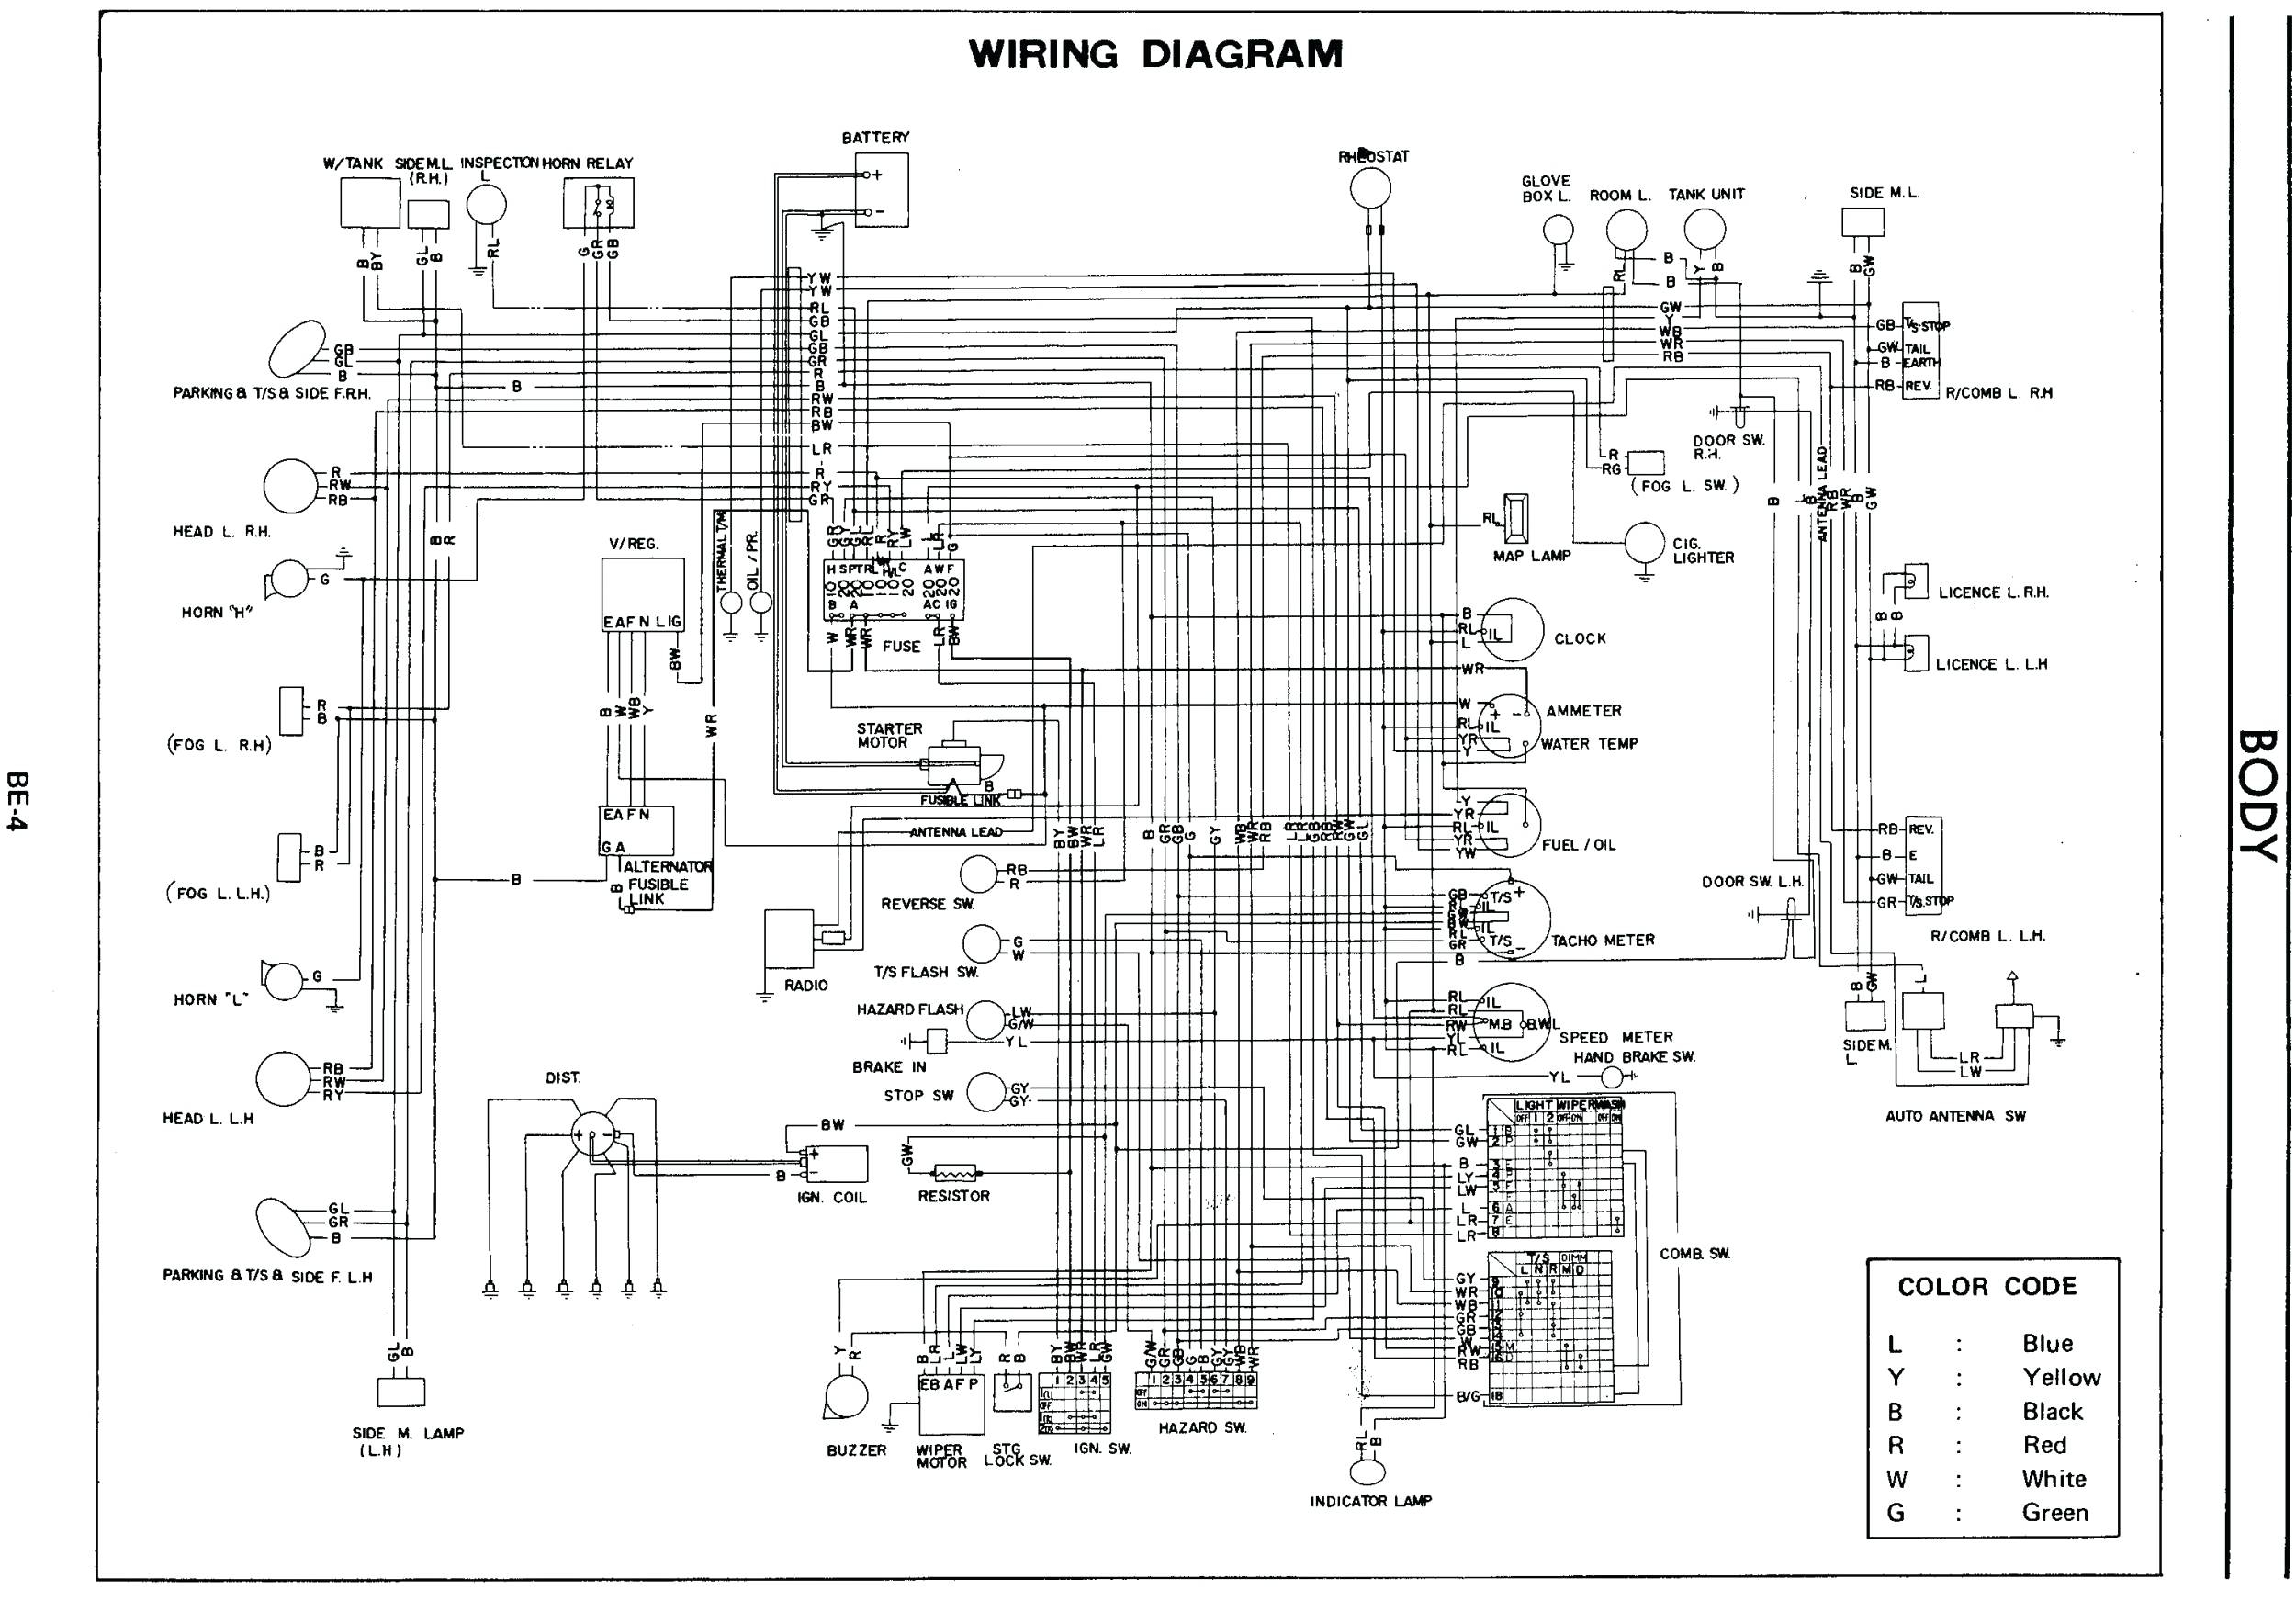 collection of 2003 mini cooper wiring diagram download 2003 mini cooper s wiring schematic #10